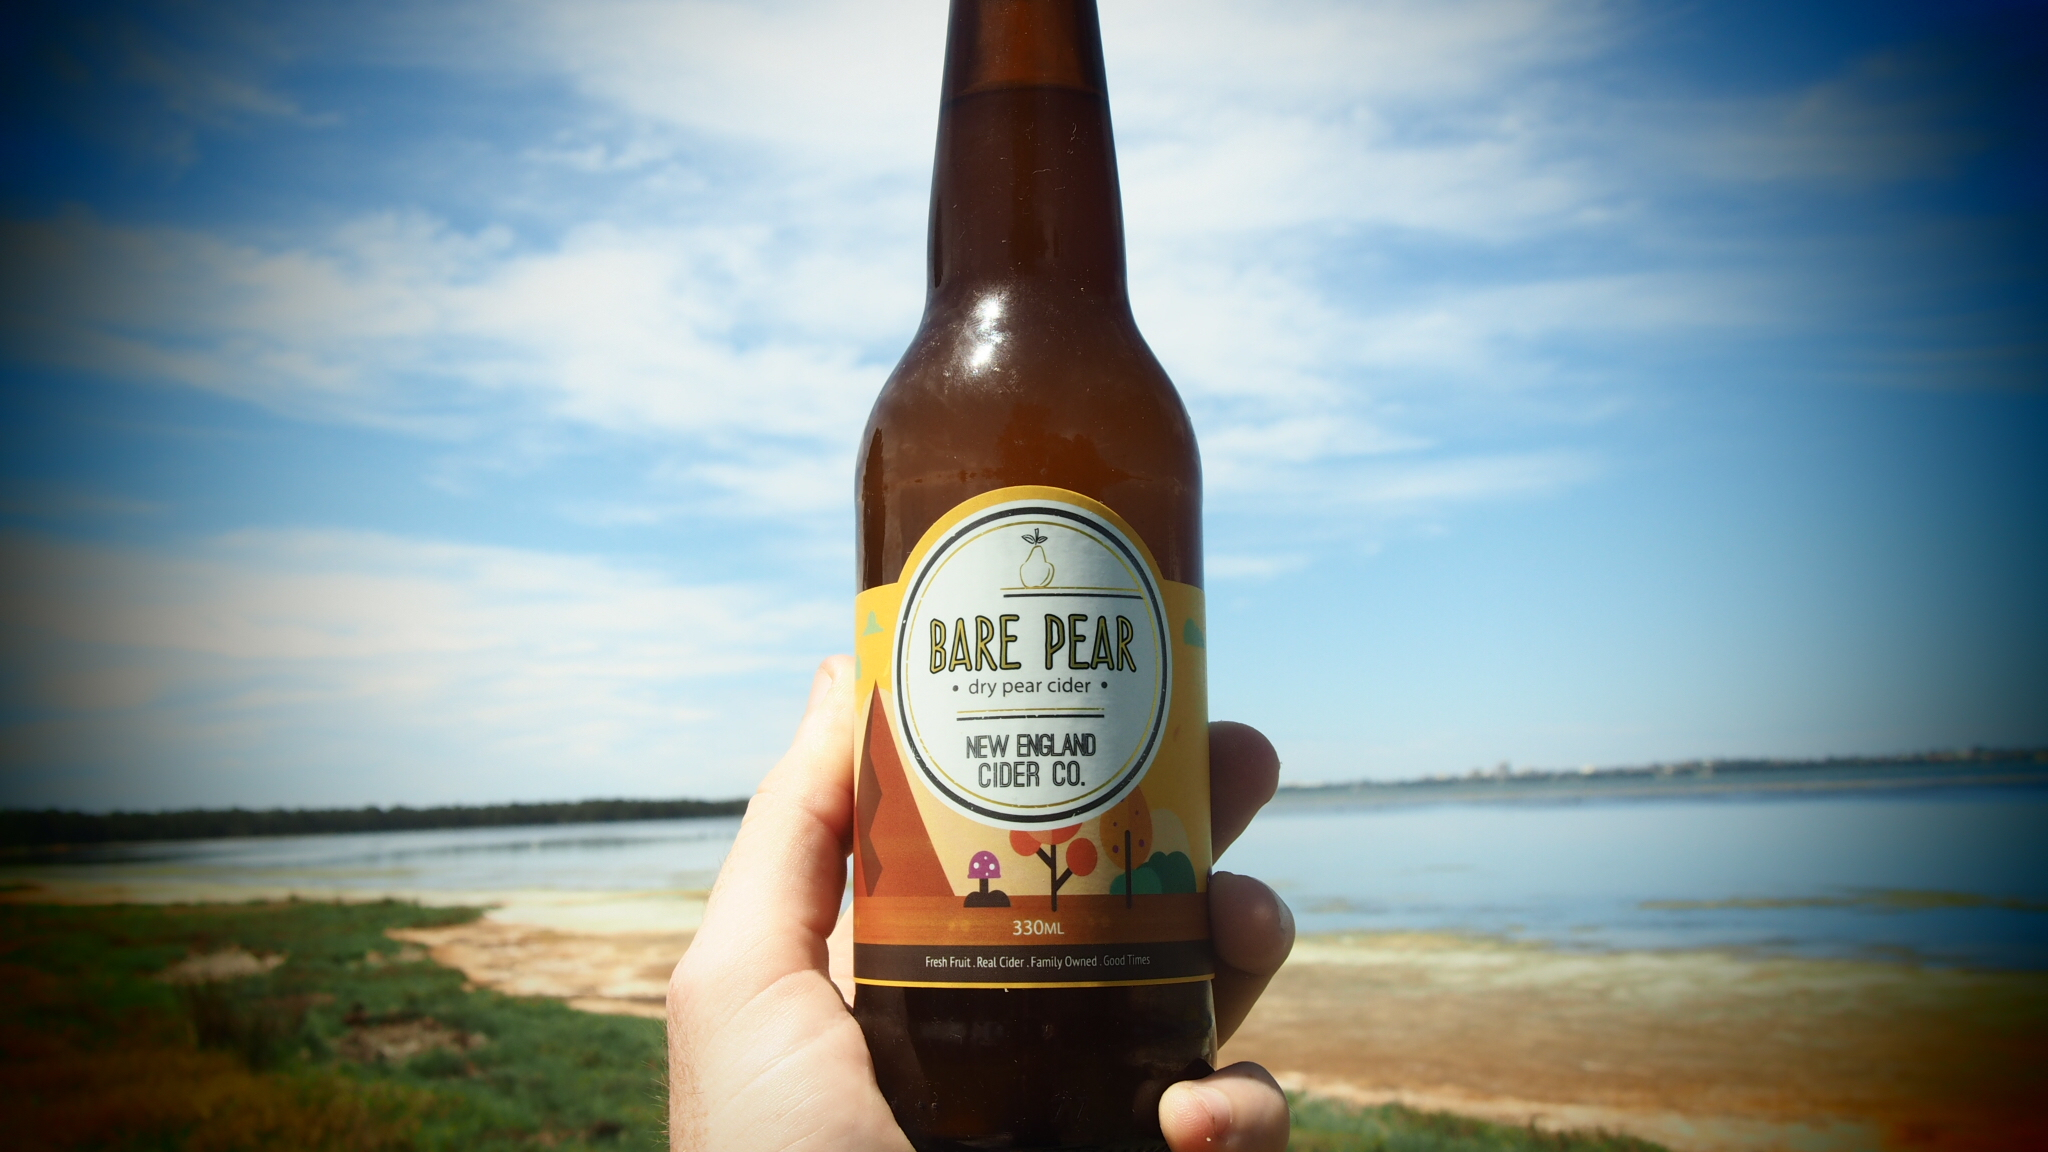 BARE PEAR - 'Bare Pear is exactly what it is, fresh Aussie Pears stripped back and shown with all to see, just how good Aussie Pear juice is! It's a dry pear so if you're not into the sweet life, this is your drink, and unbelievably refreshing!5.5% ABVAVAILABLE IN:330ml bottles